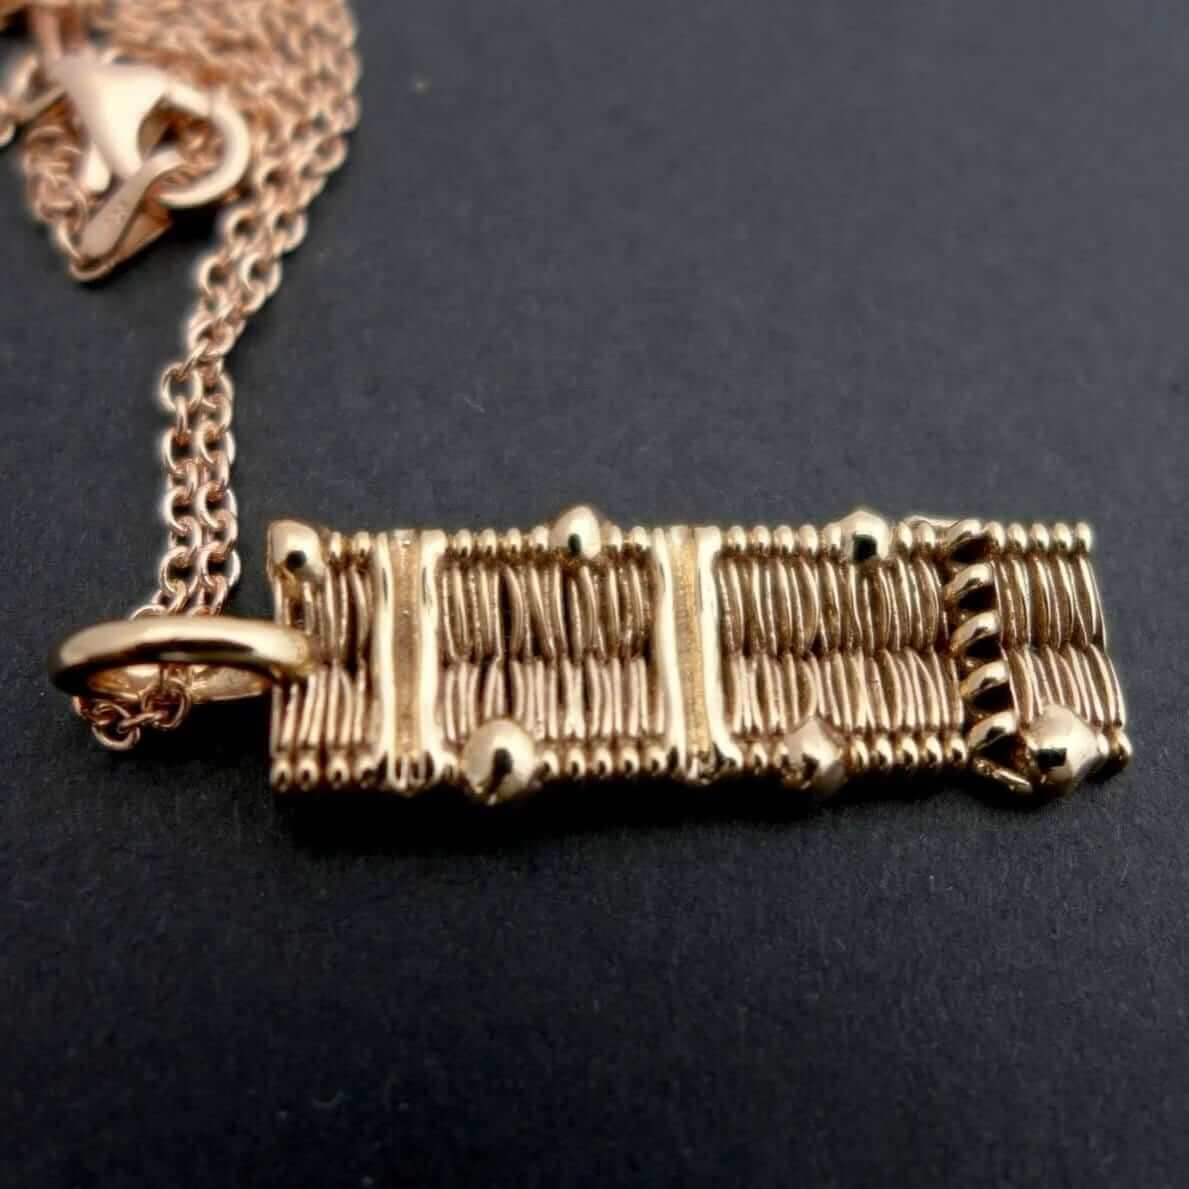 Cell Membrane Pendant Pendant [Ontogenie Science Jewelry] bronze 40 cm/16 in